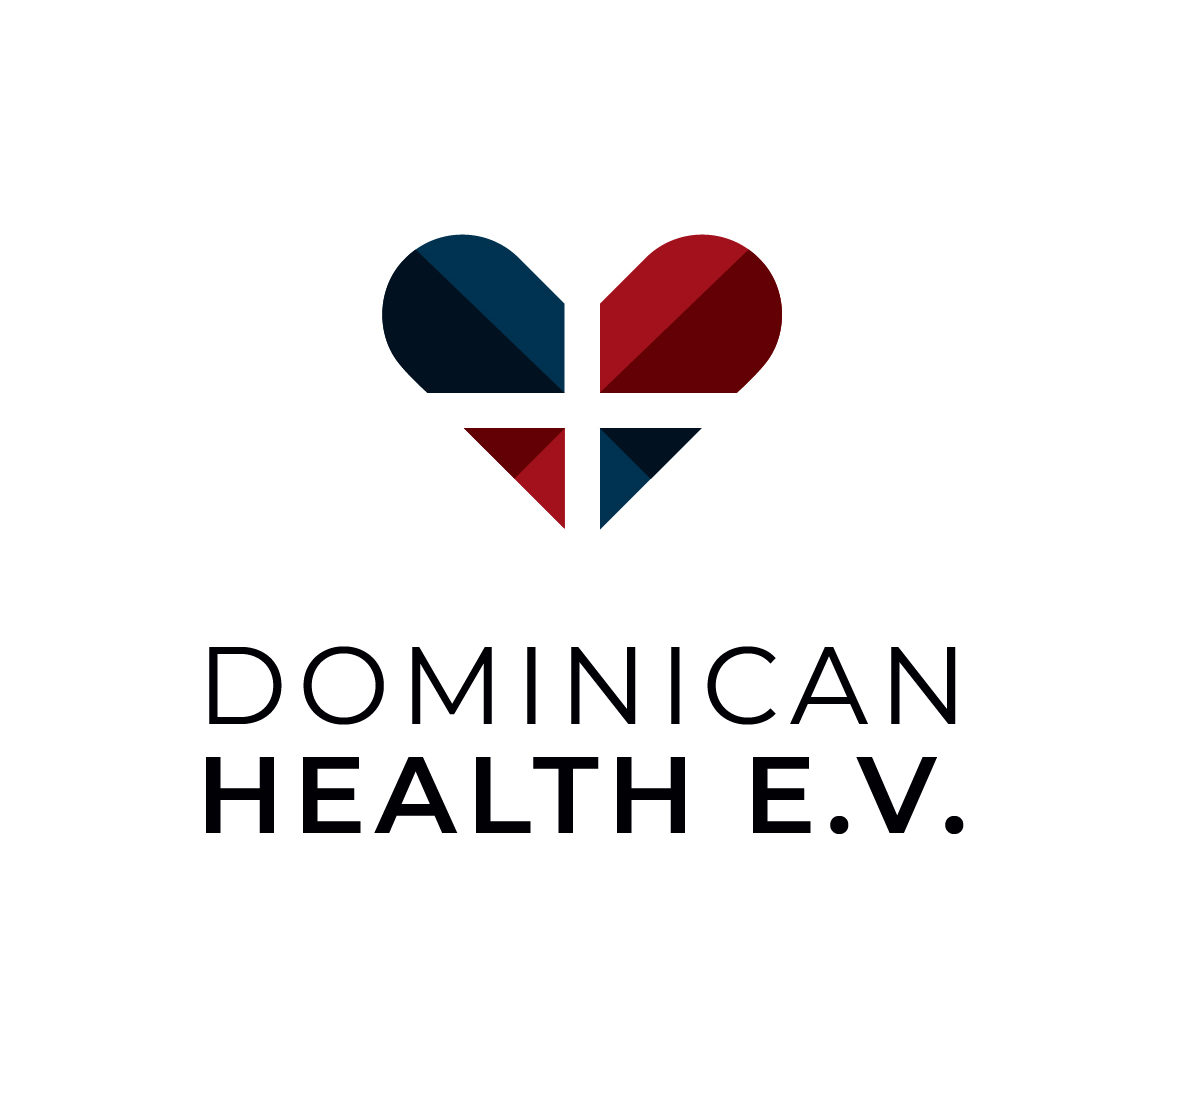 Dominican Health